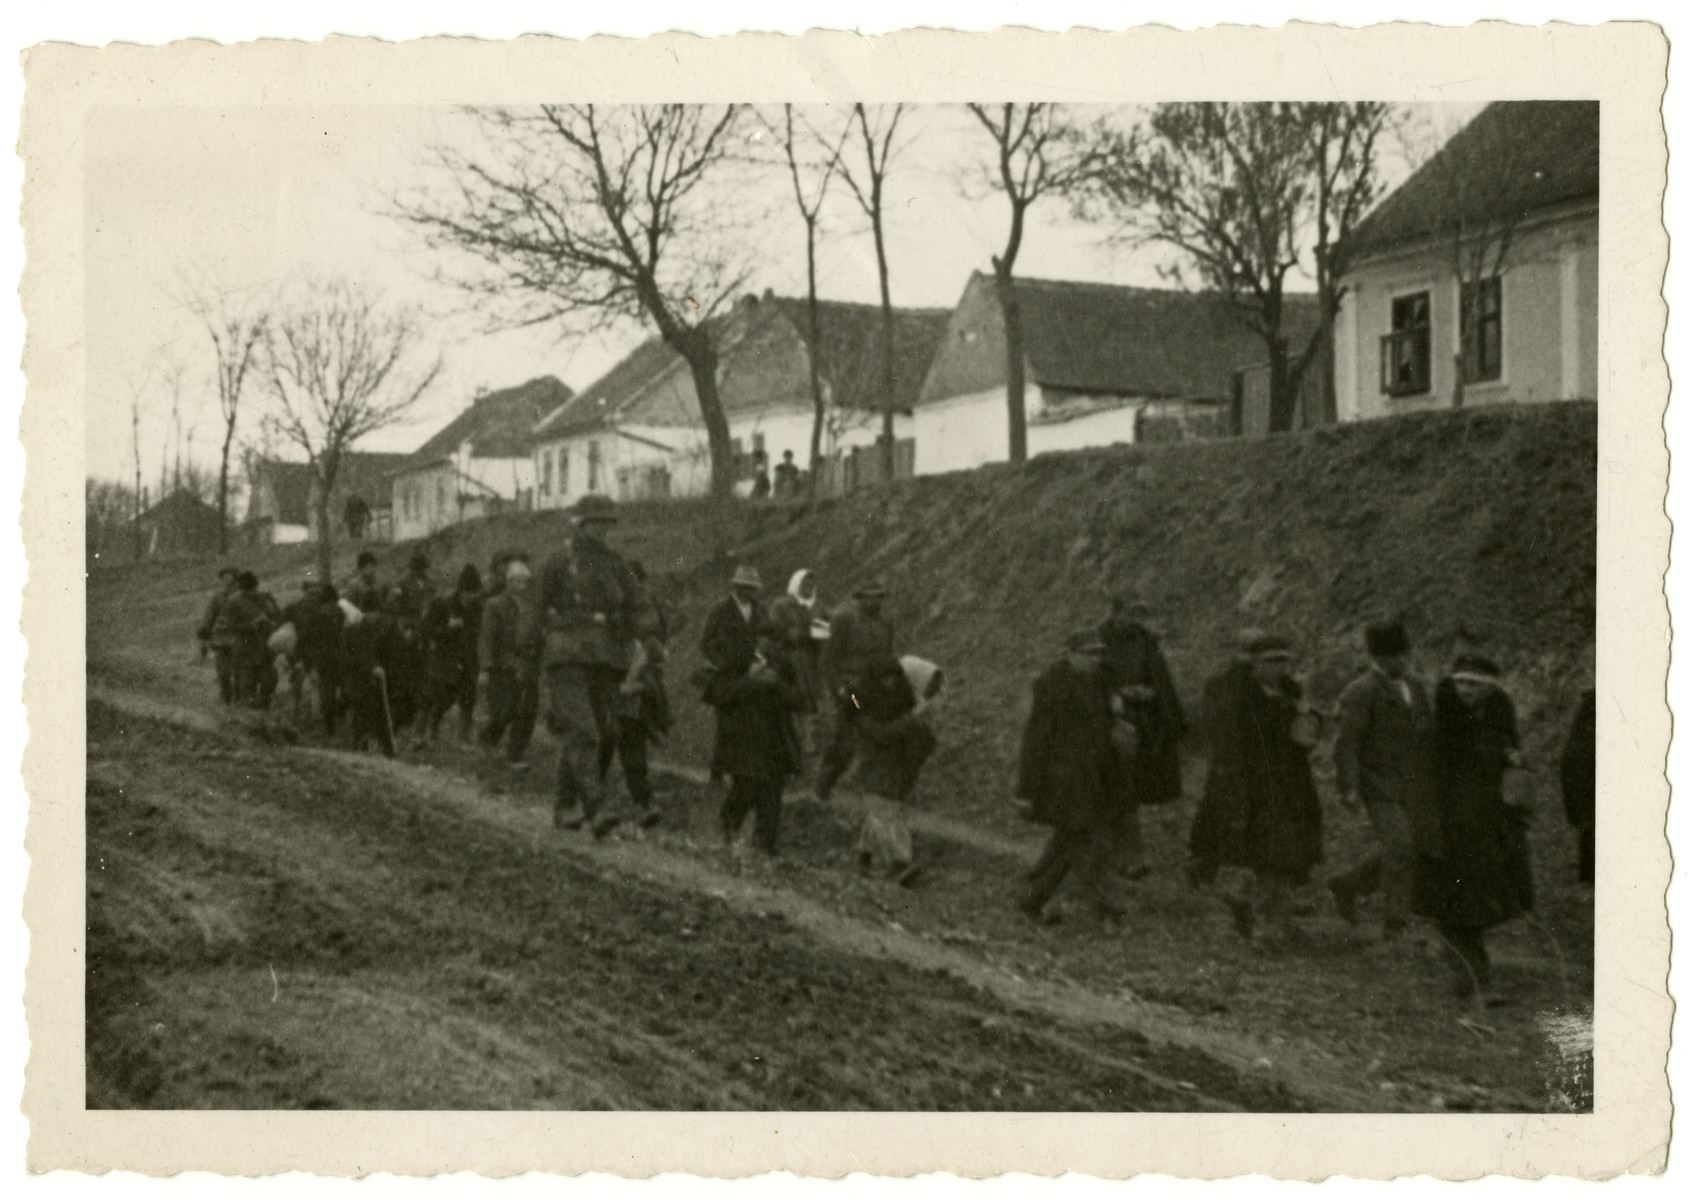 A German soldiers escorts a column of people in an unidentified locale.